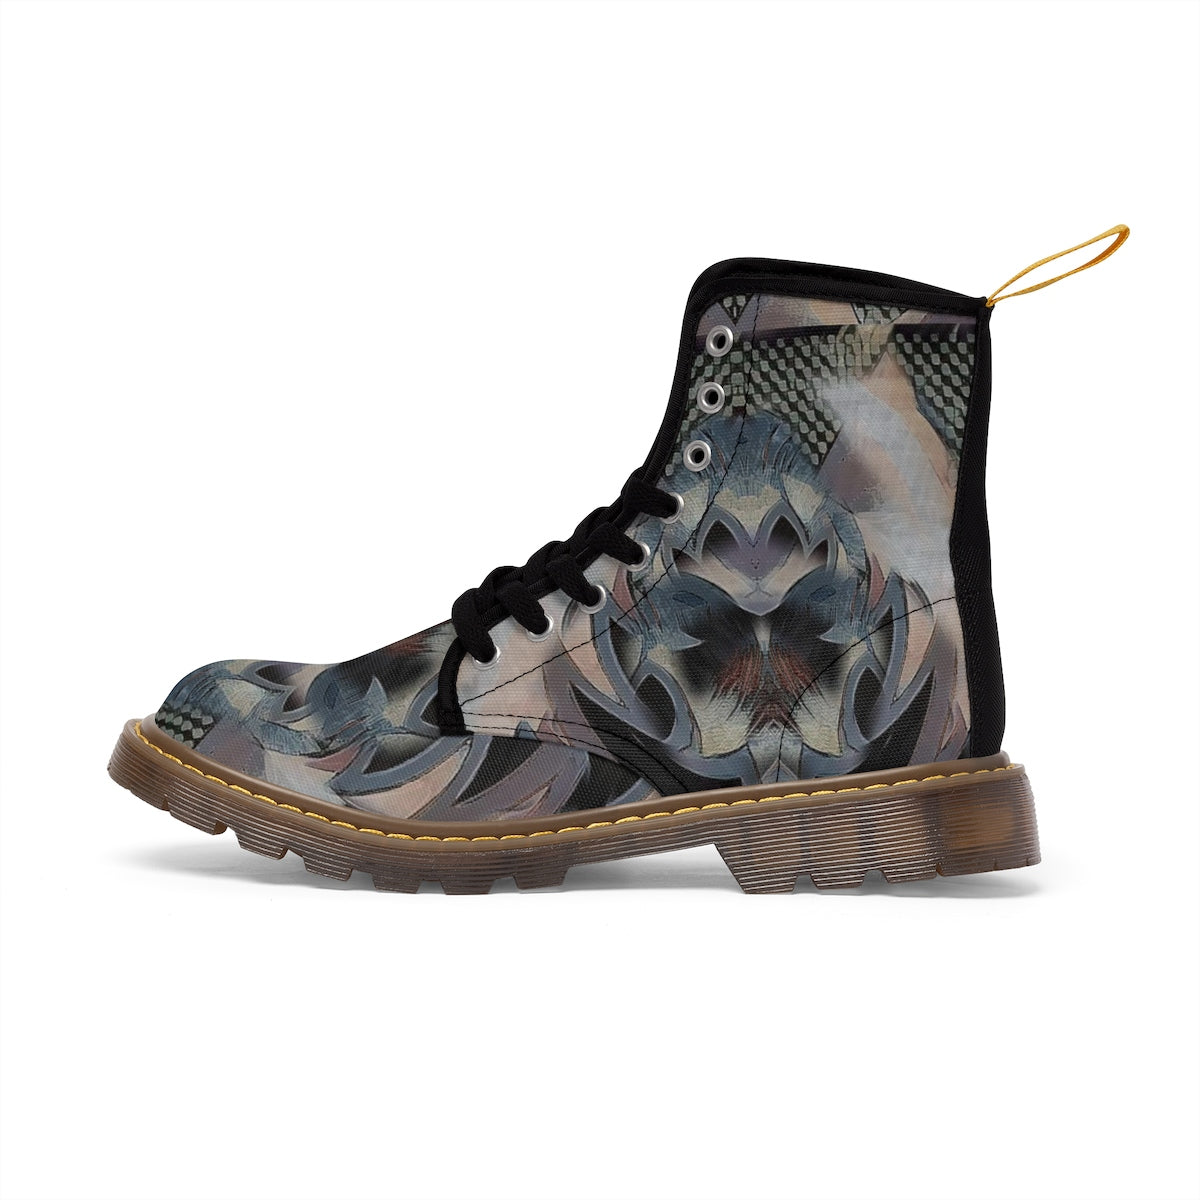 Men's Martin Boots - None have ever | A Pattern Designed by @remlor - Remlor Art